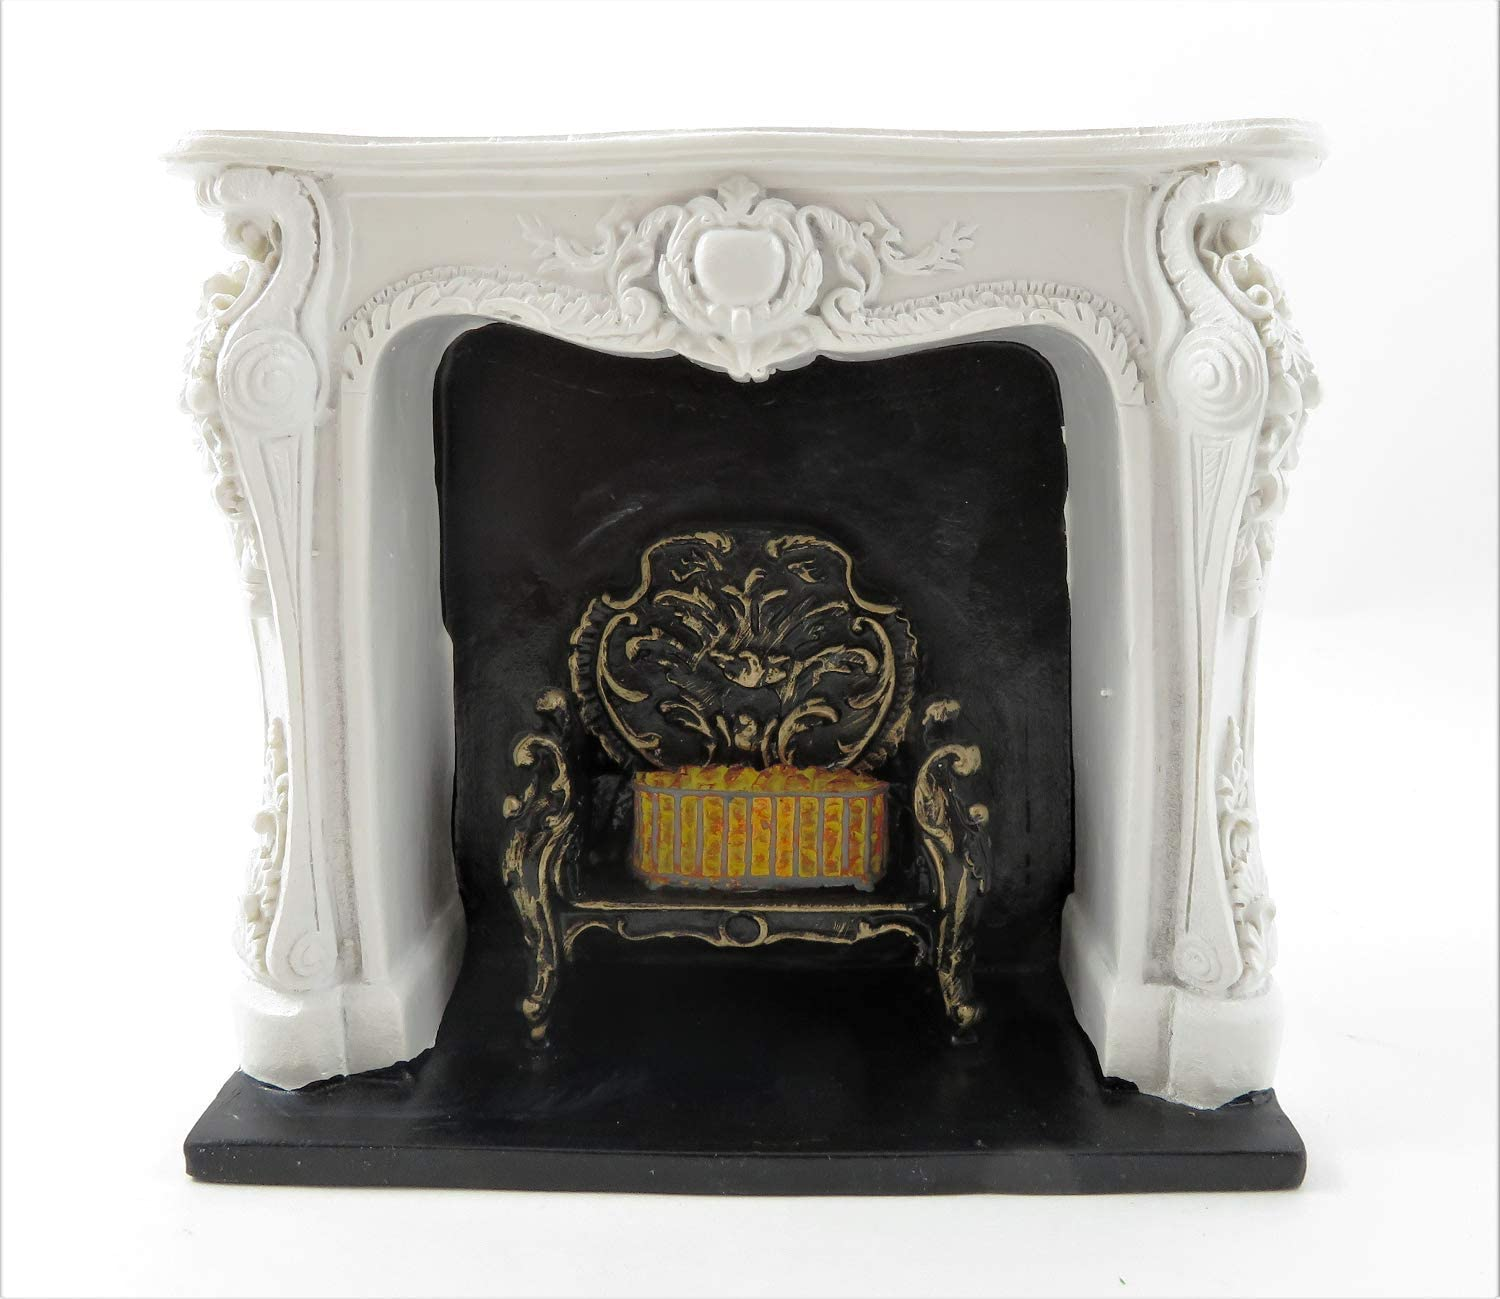 Melody Jane Dollhouse Rococo White Fireplace with Black & Gold Grate Resin 1:12 Furniture